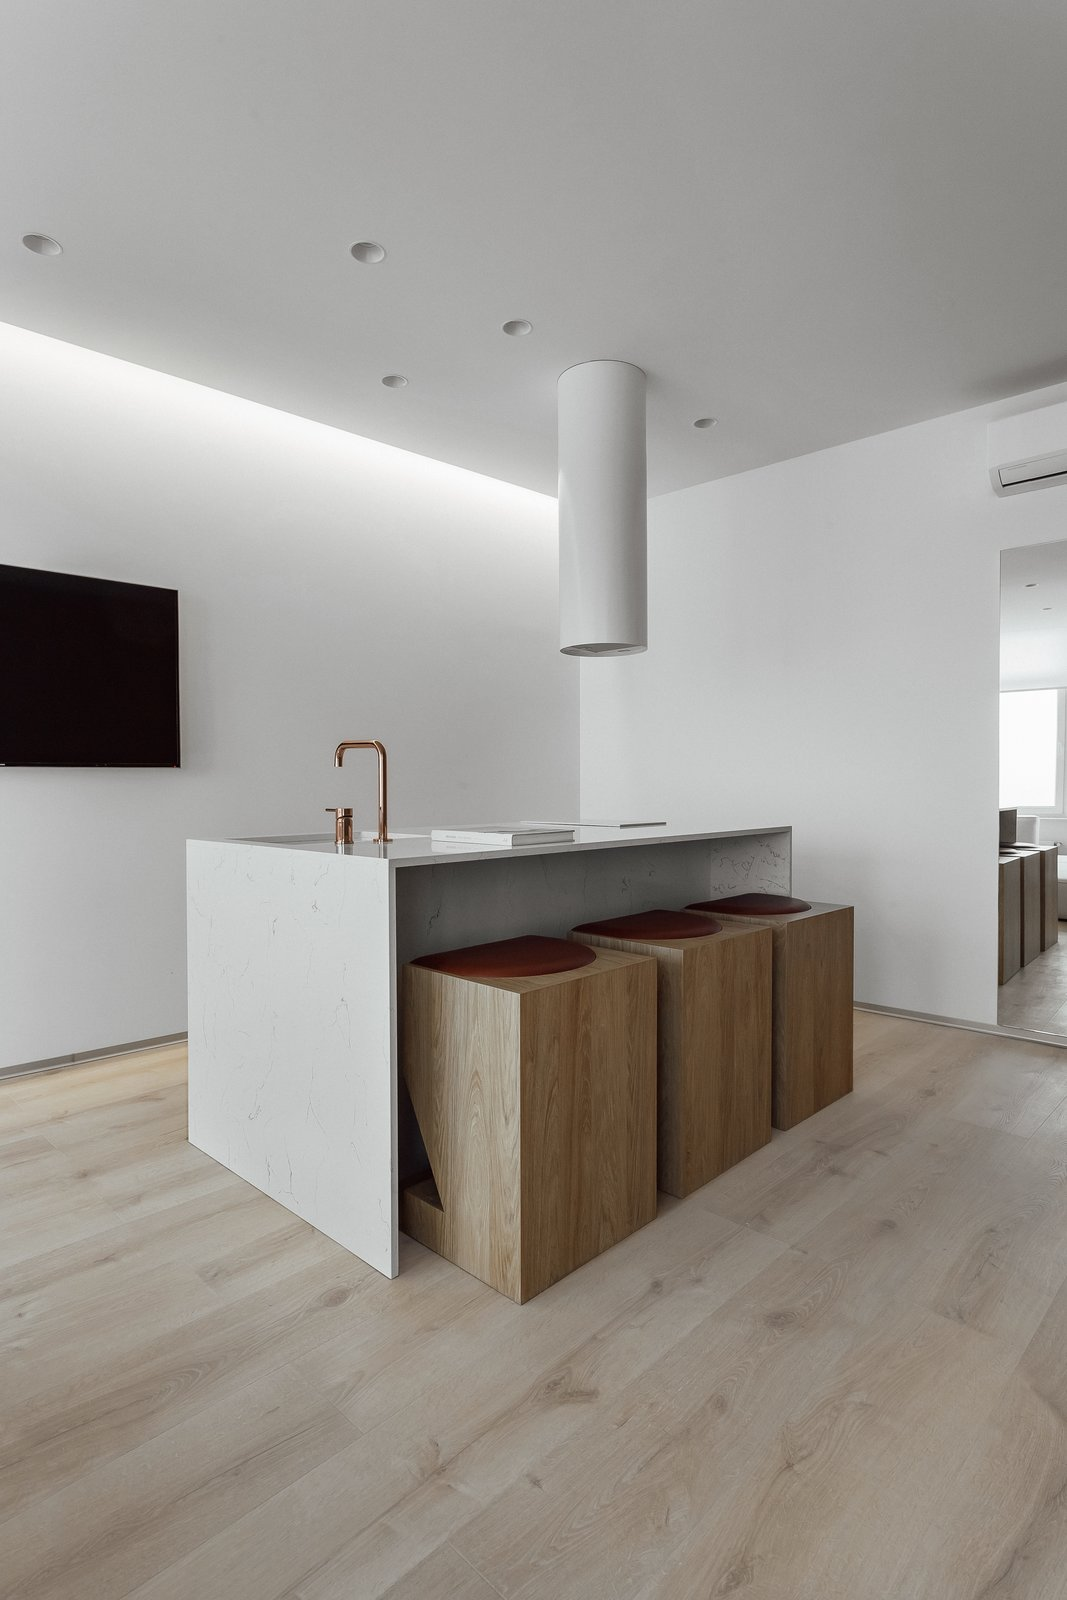 Kitchen, Quartzite Counter, Drop In Sink, Ceiling Lighting, White Cabinet, and Light Hardwood Floor  191 Apt.